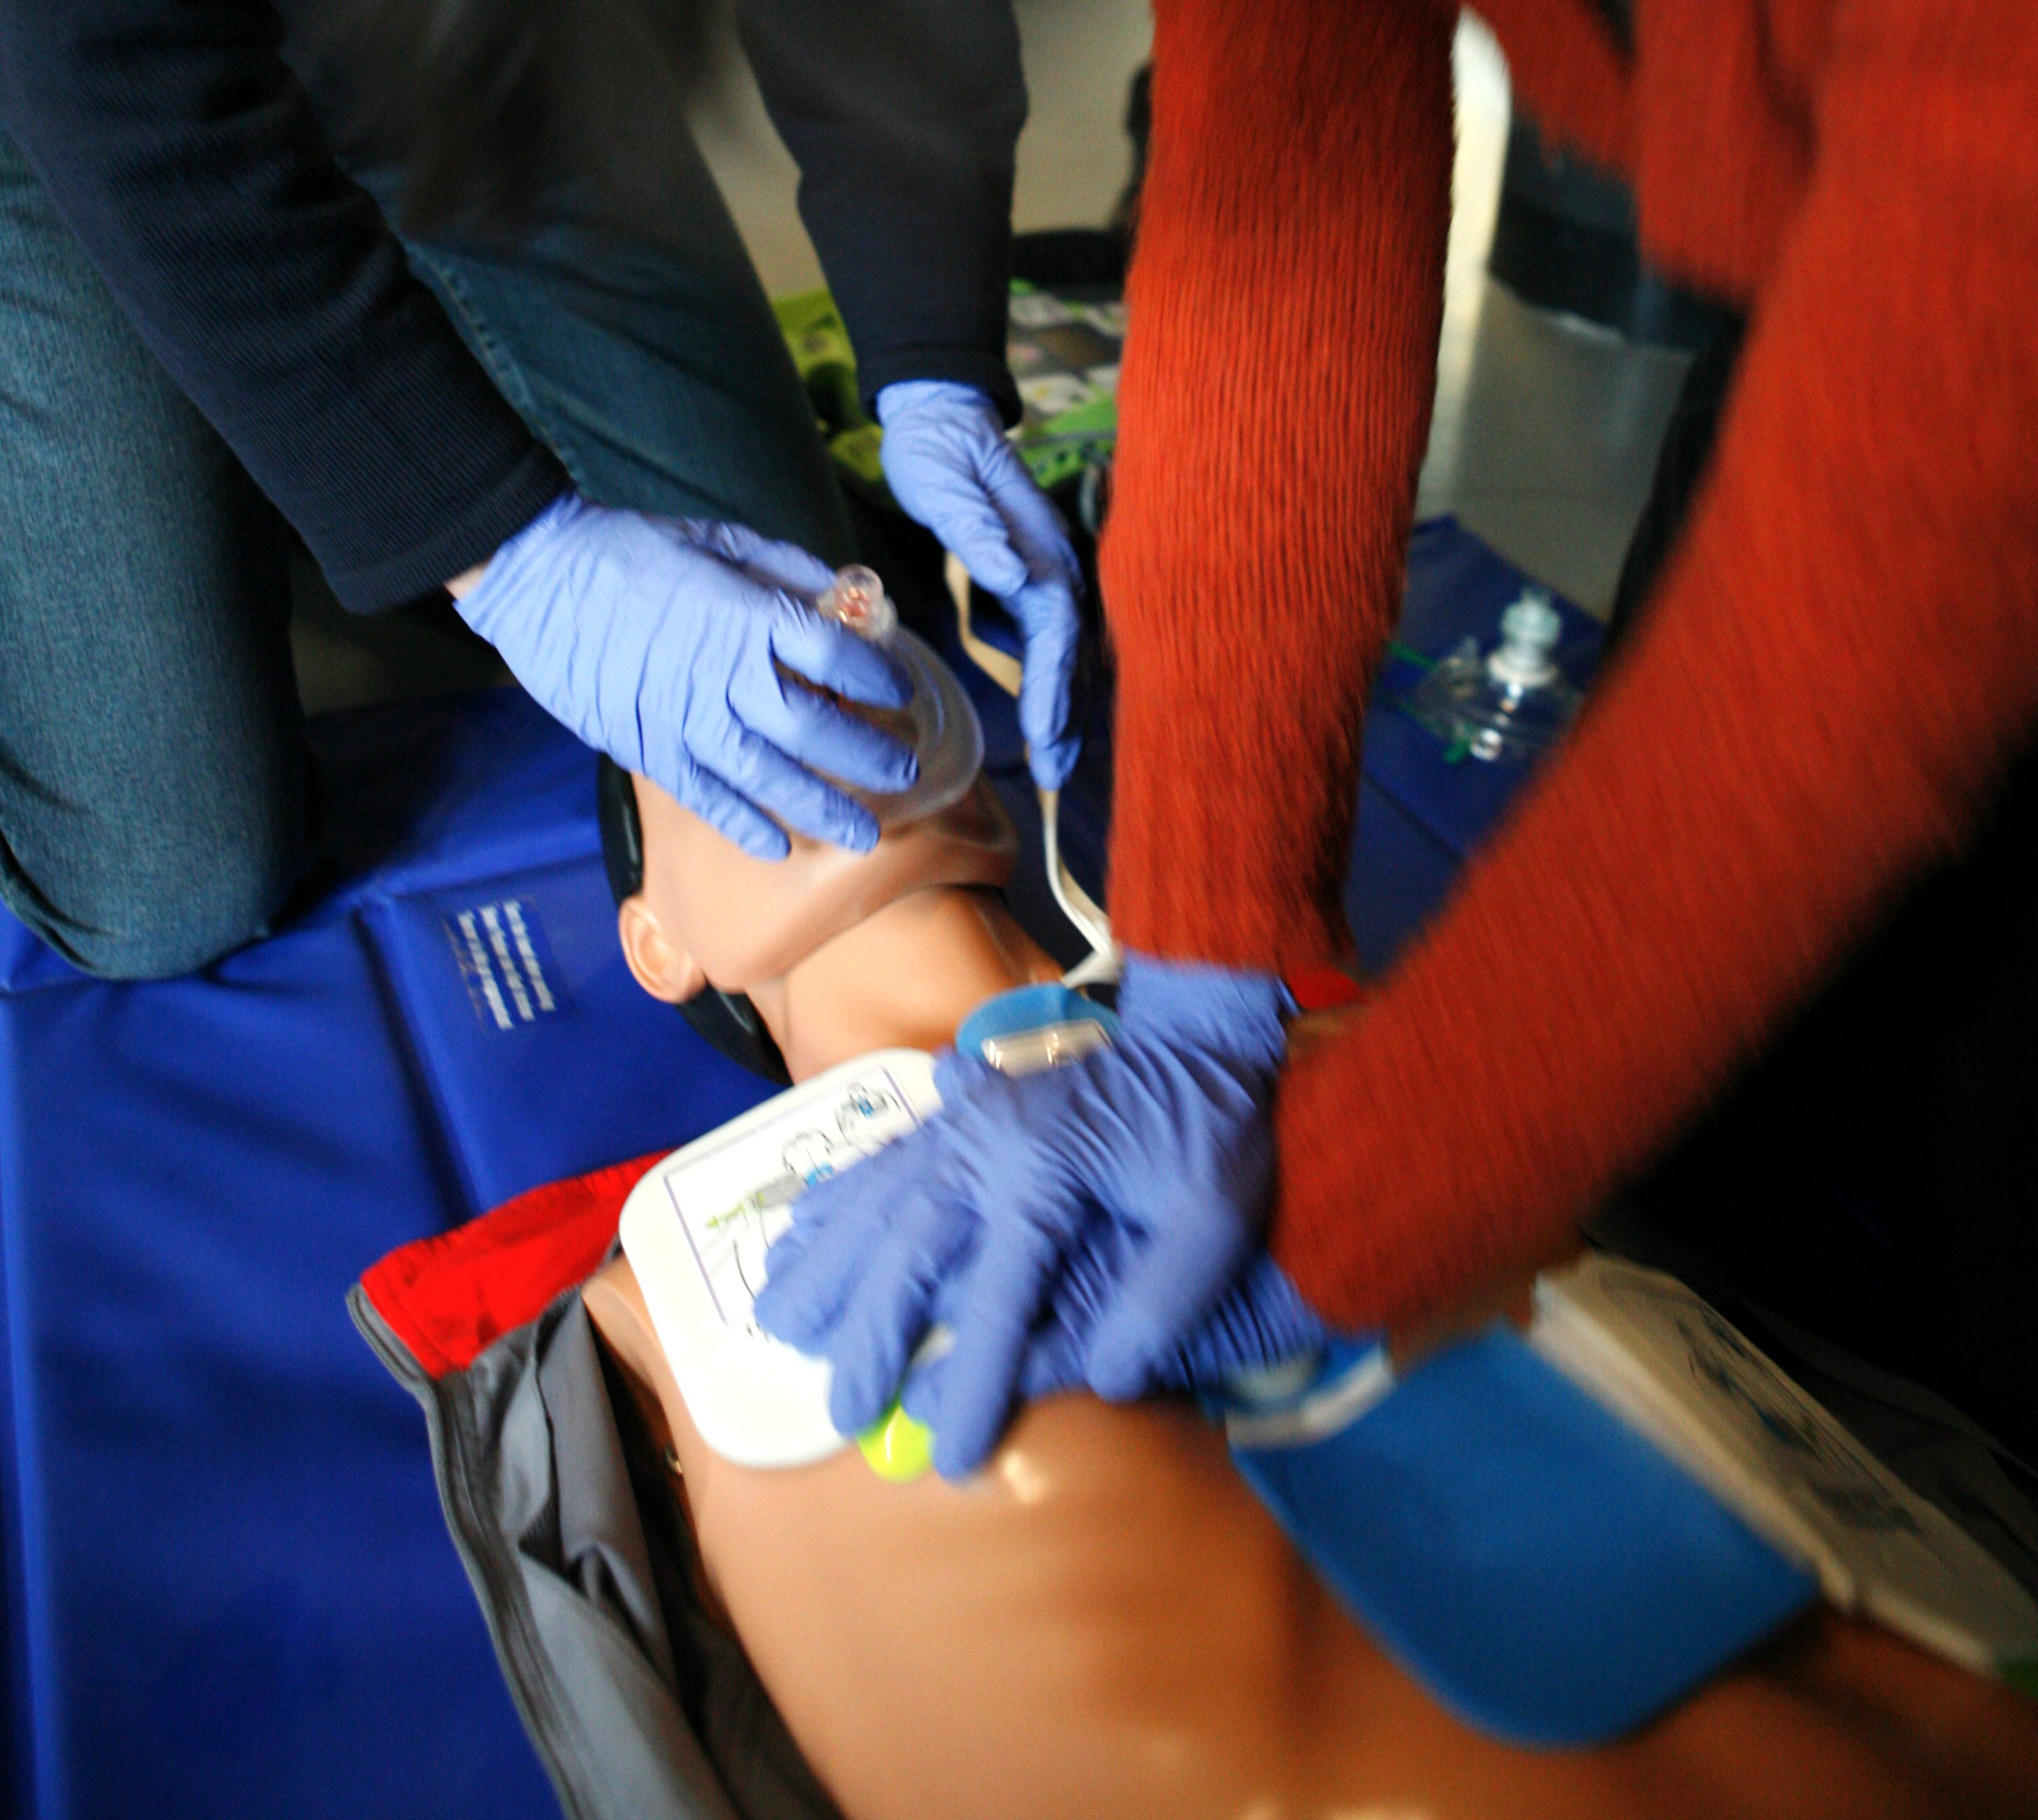 File:CPR training-04.jpg